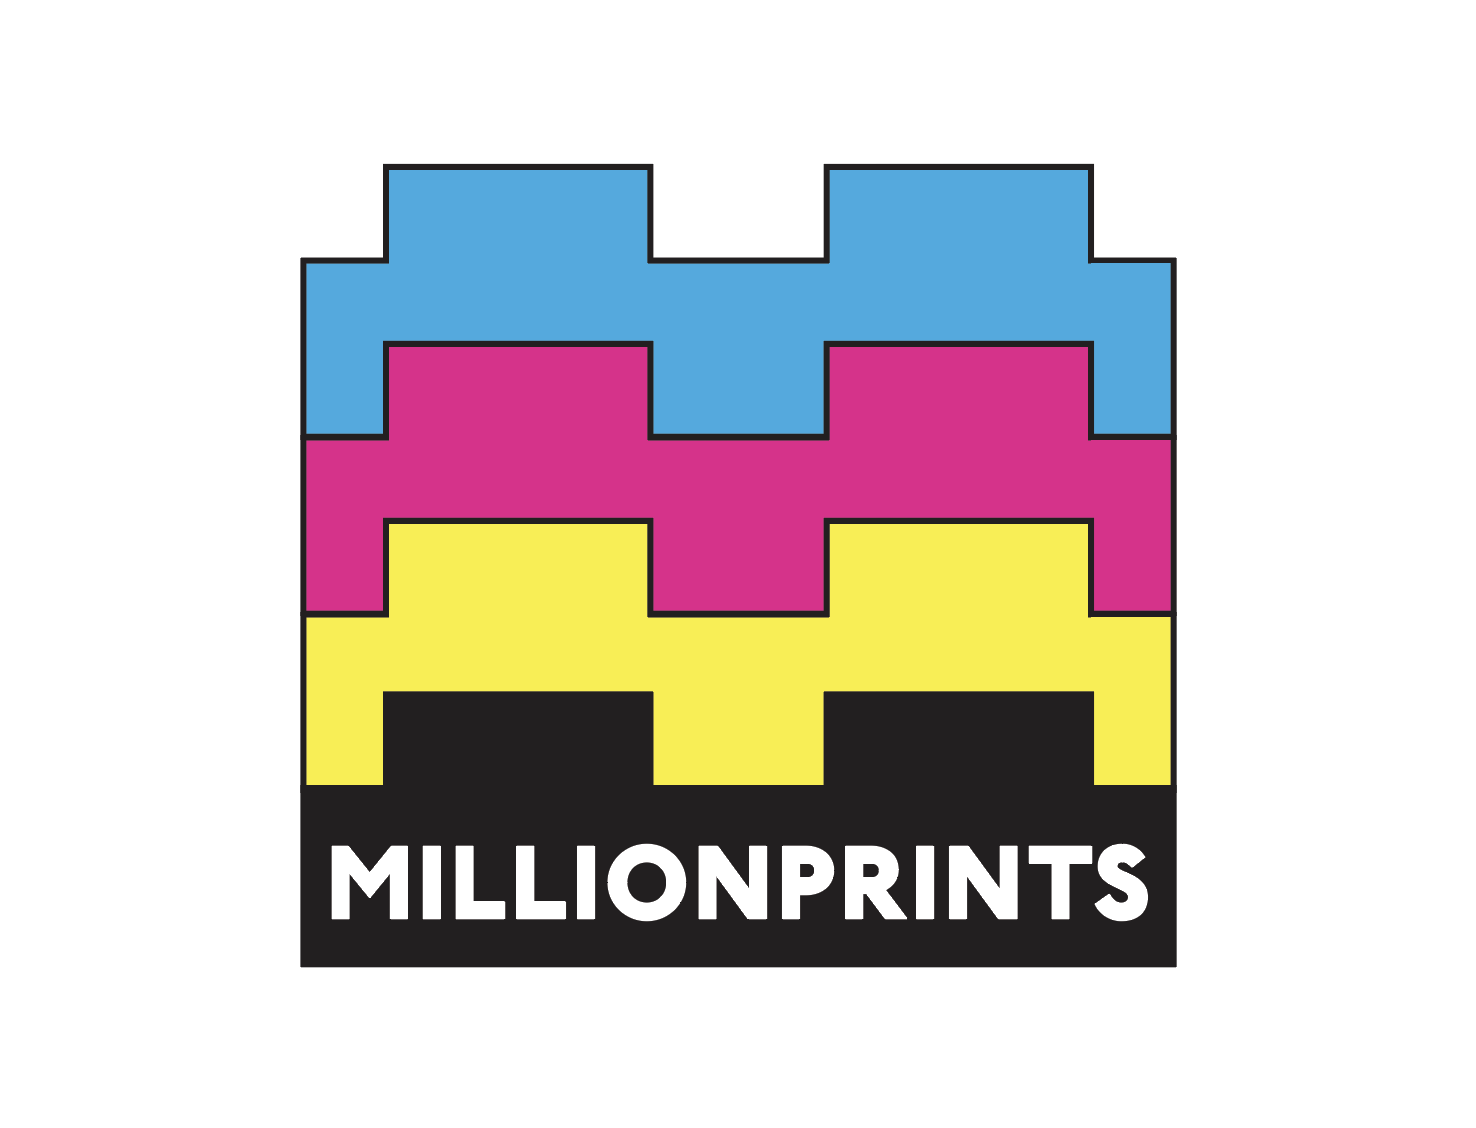 millionprints1x8tile-logo